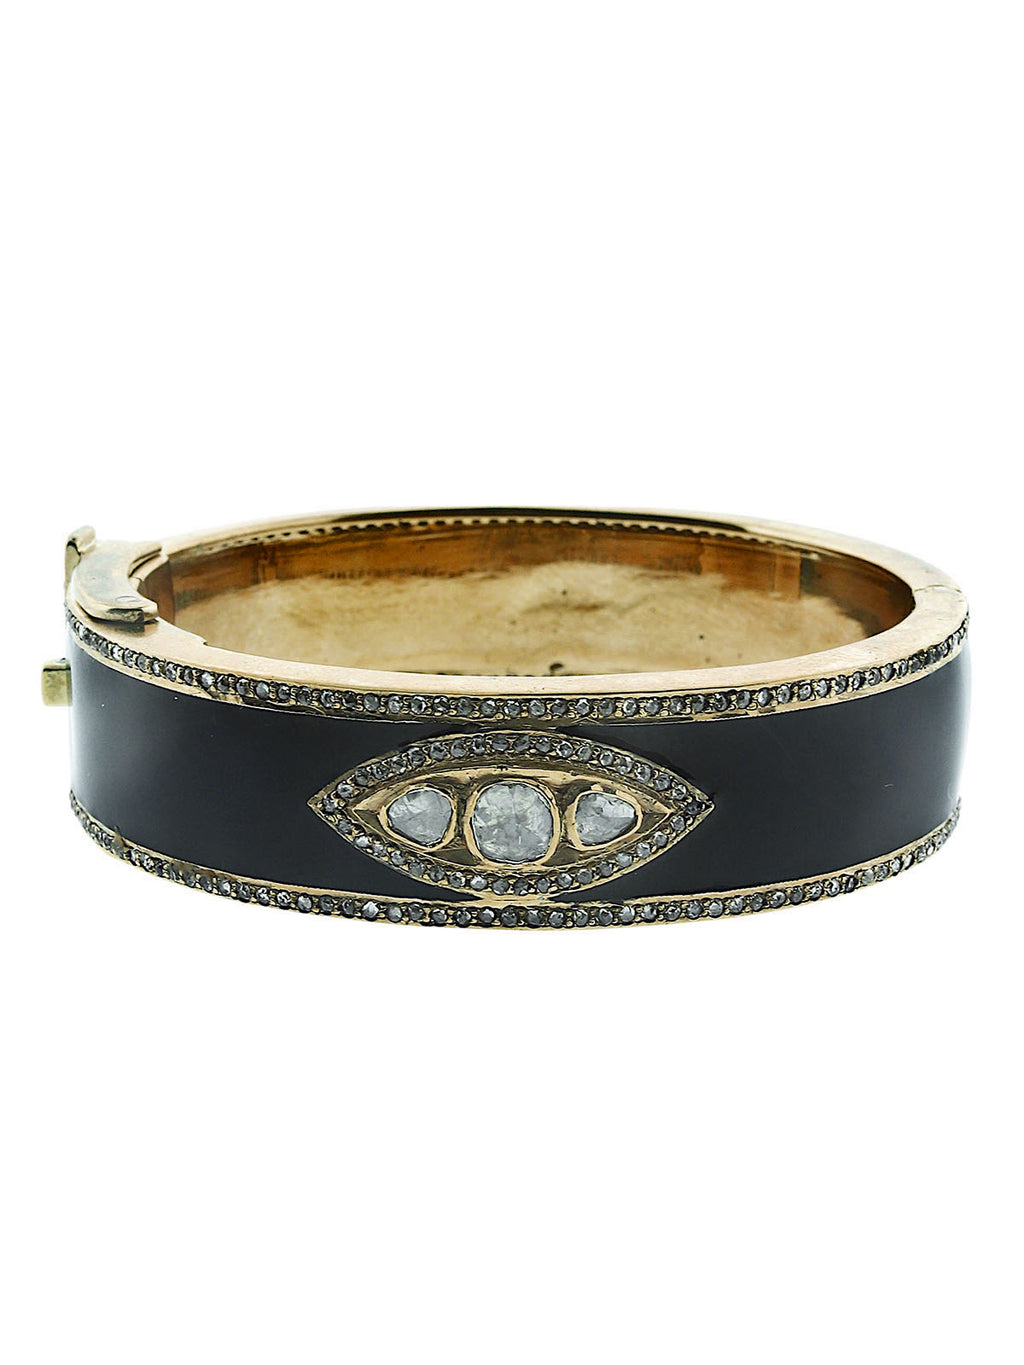 Brass and Enamel Bangle with Diamond Eye and Pave Diamonds.